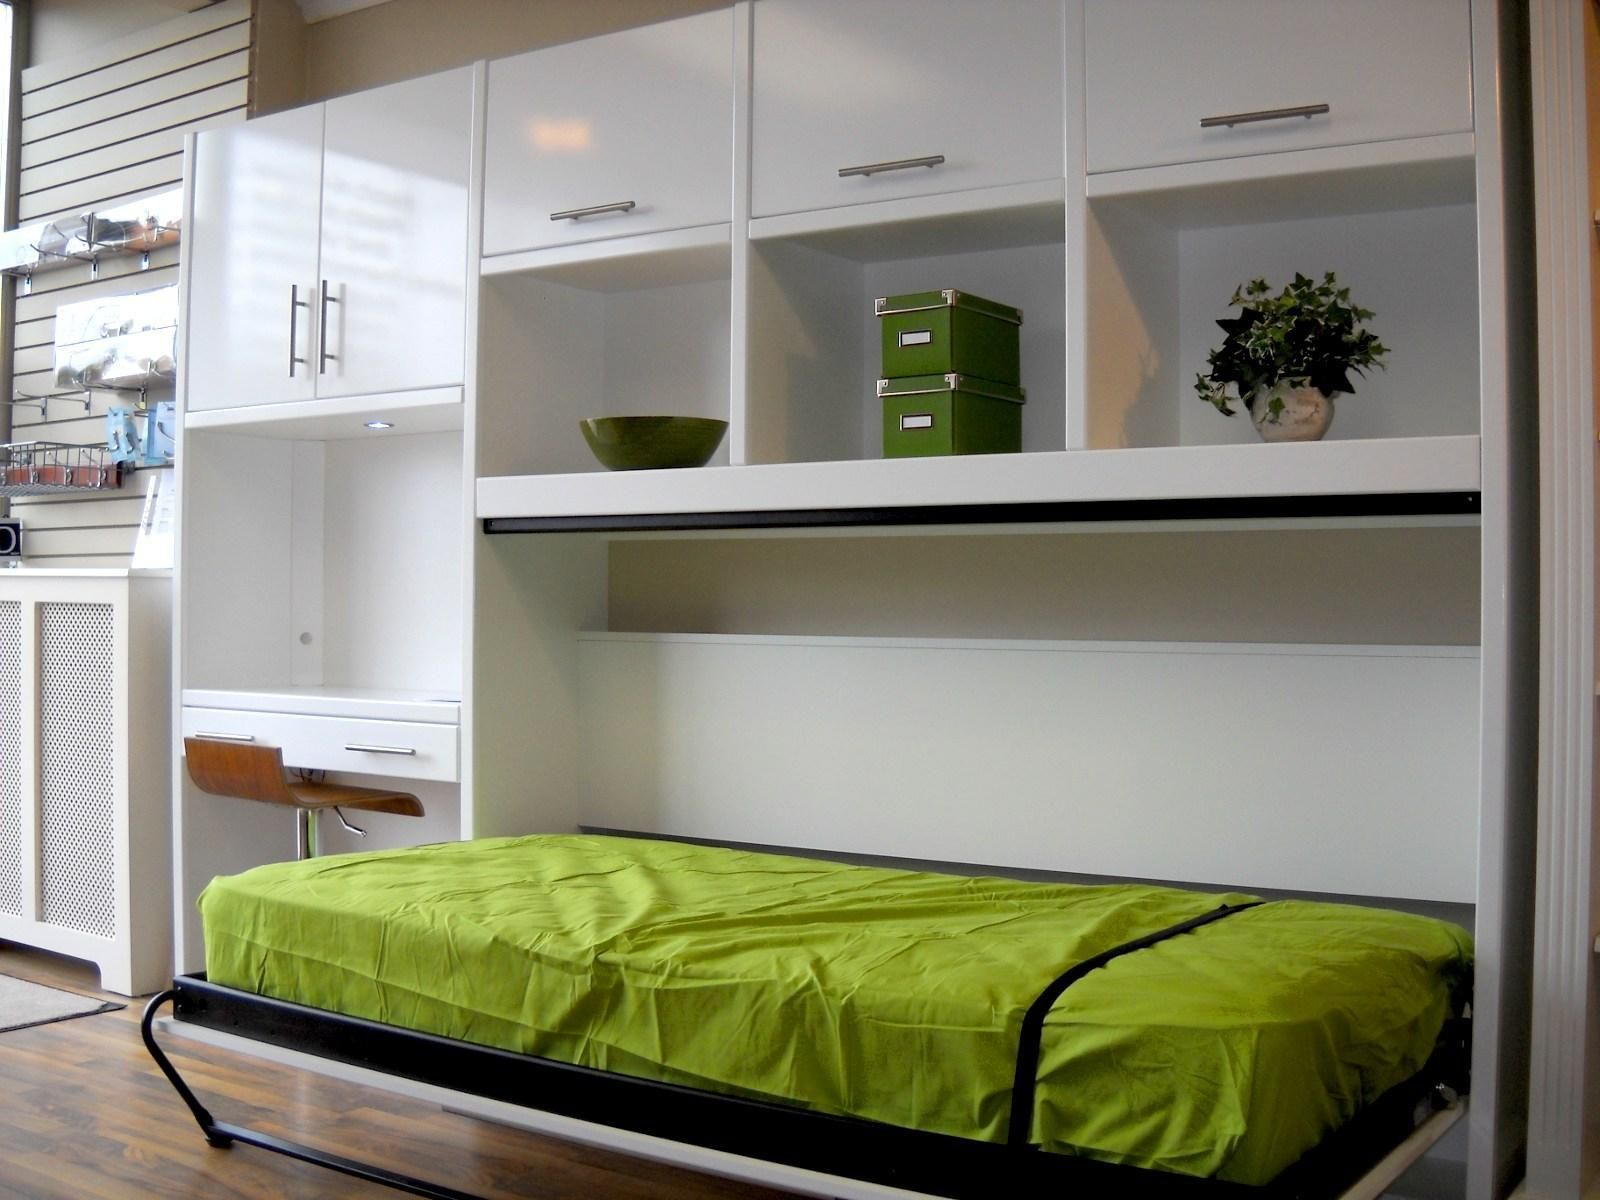 Icon of have a murphy bed chicago for comfortable and stylish icon of have a murphy bed chicago for comfortable and stylish bedroom amipublicfo Images